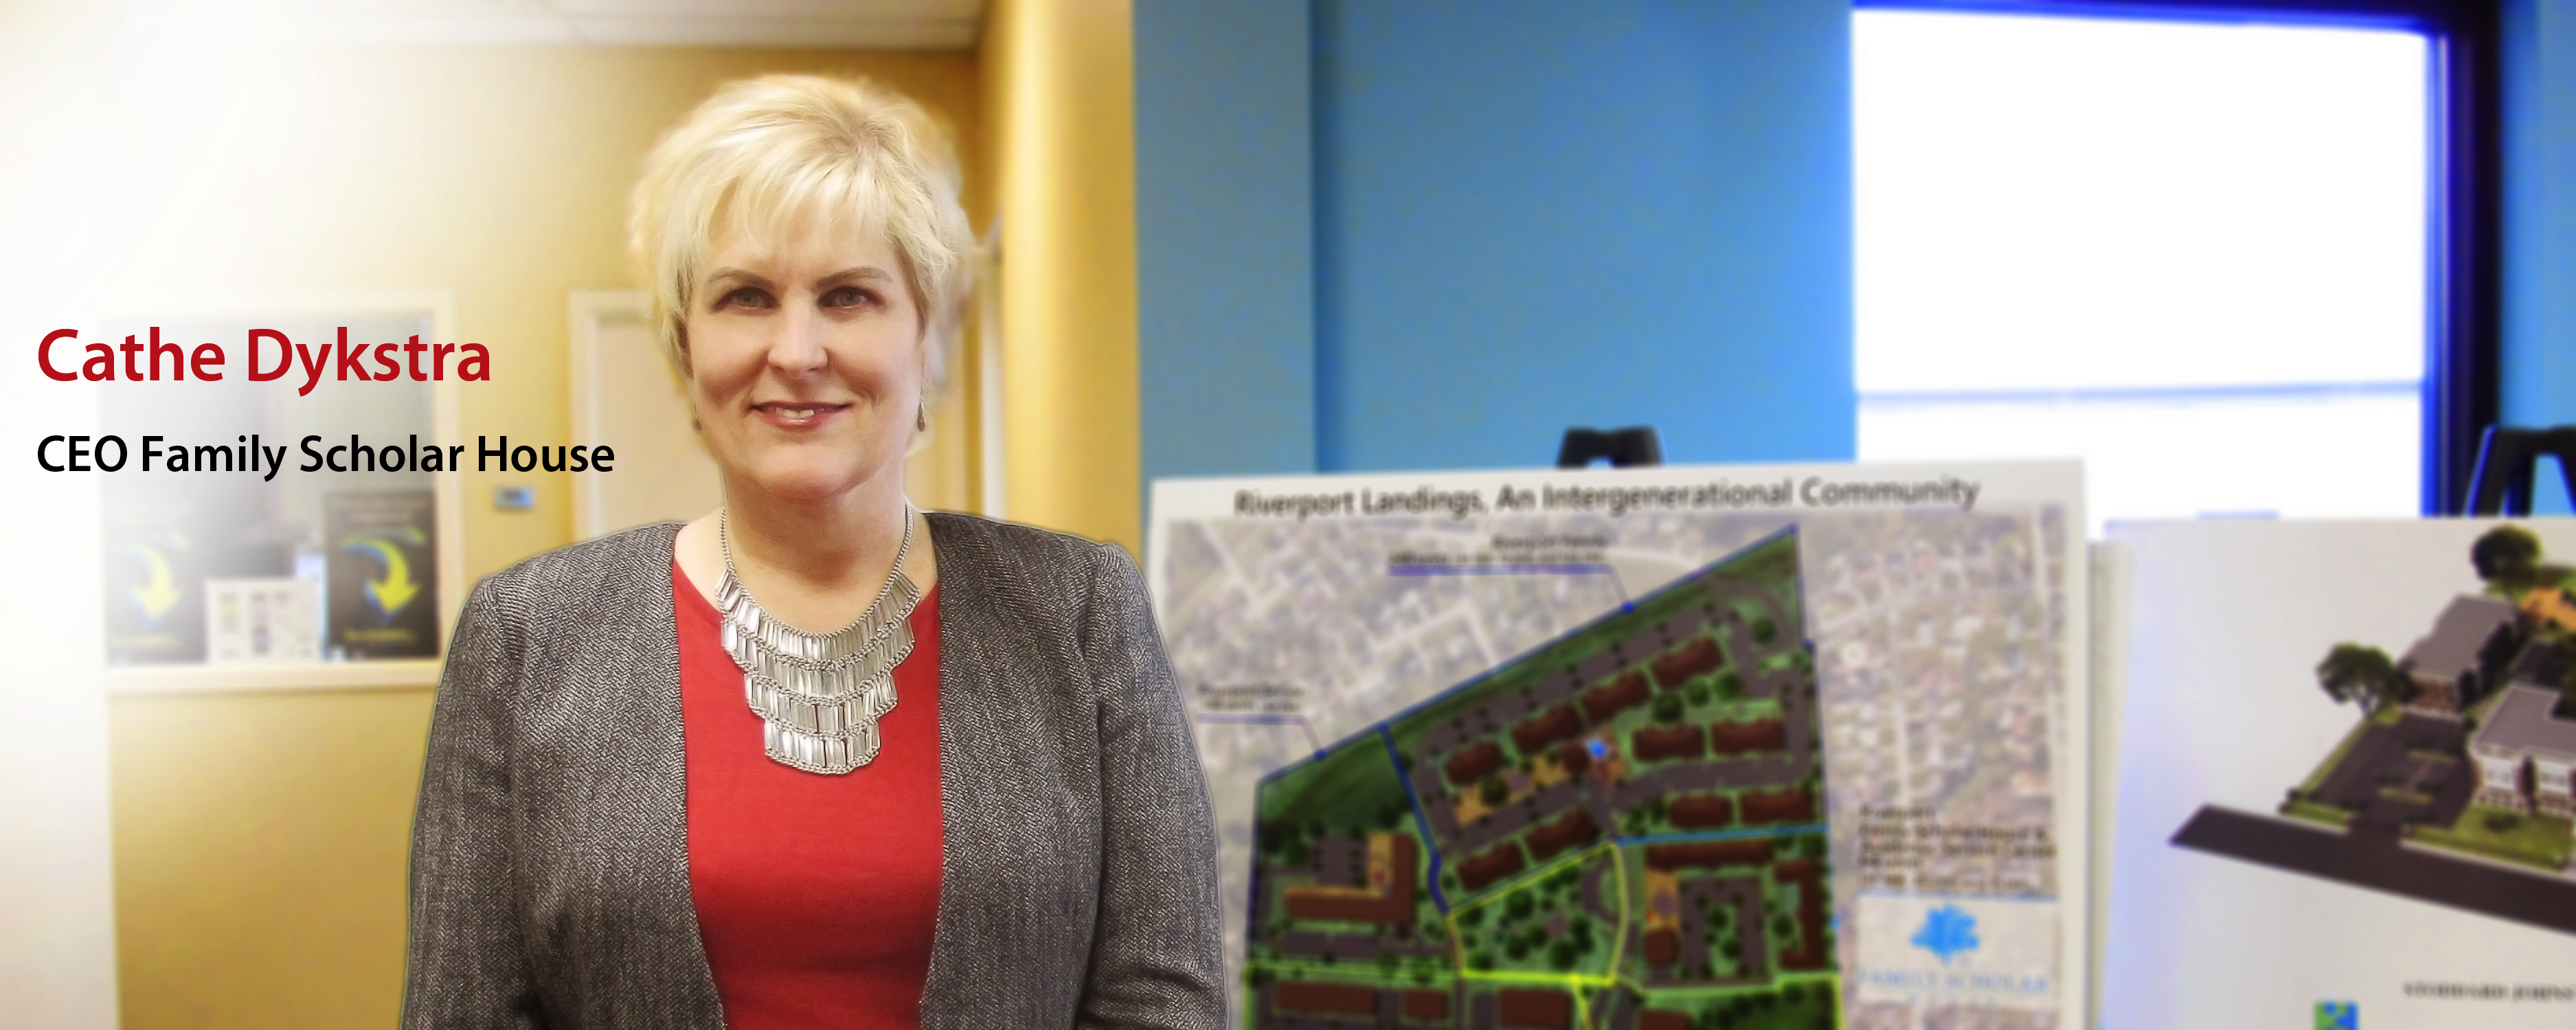 Cathe Dykstra - CEO of Family Scholar House - standing in front of building plans